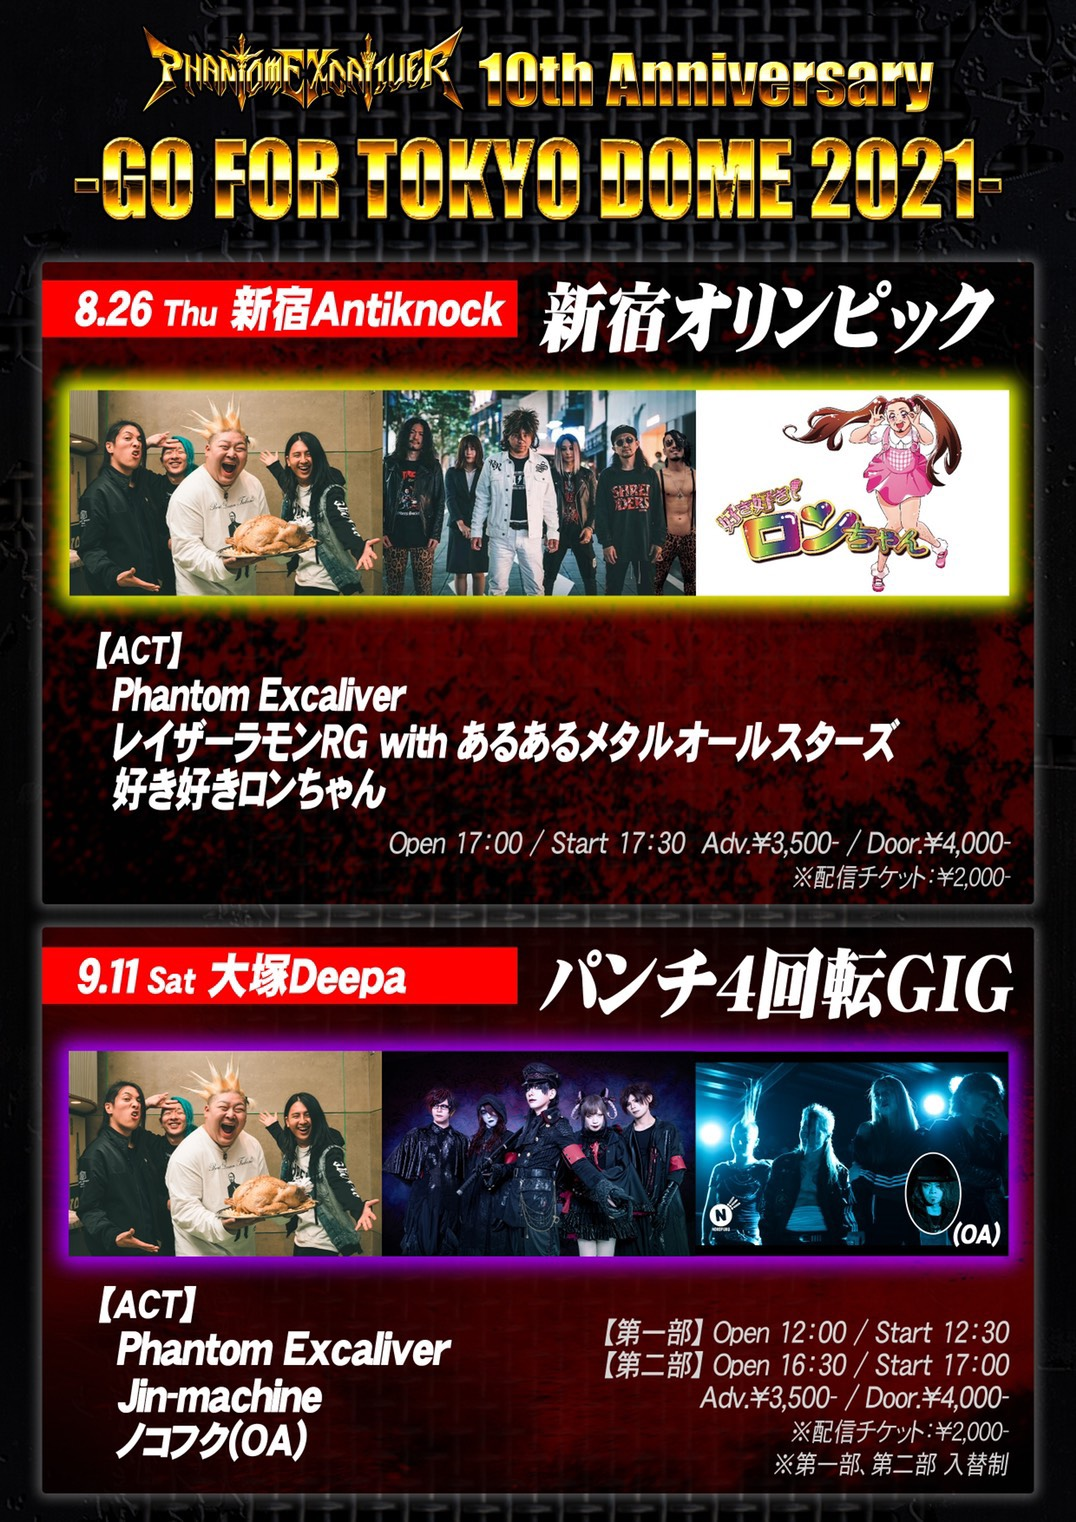 「Phantom Excaliver 10周年 GO FOR TOKYO DOME 2021」 -新宿オリンピック-